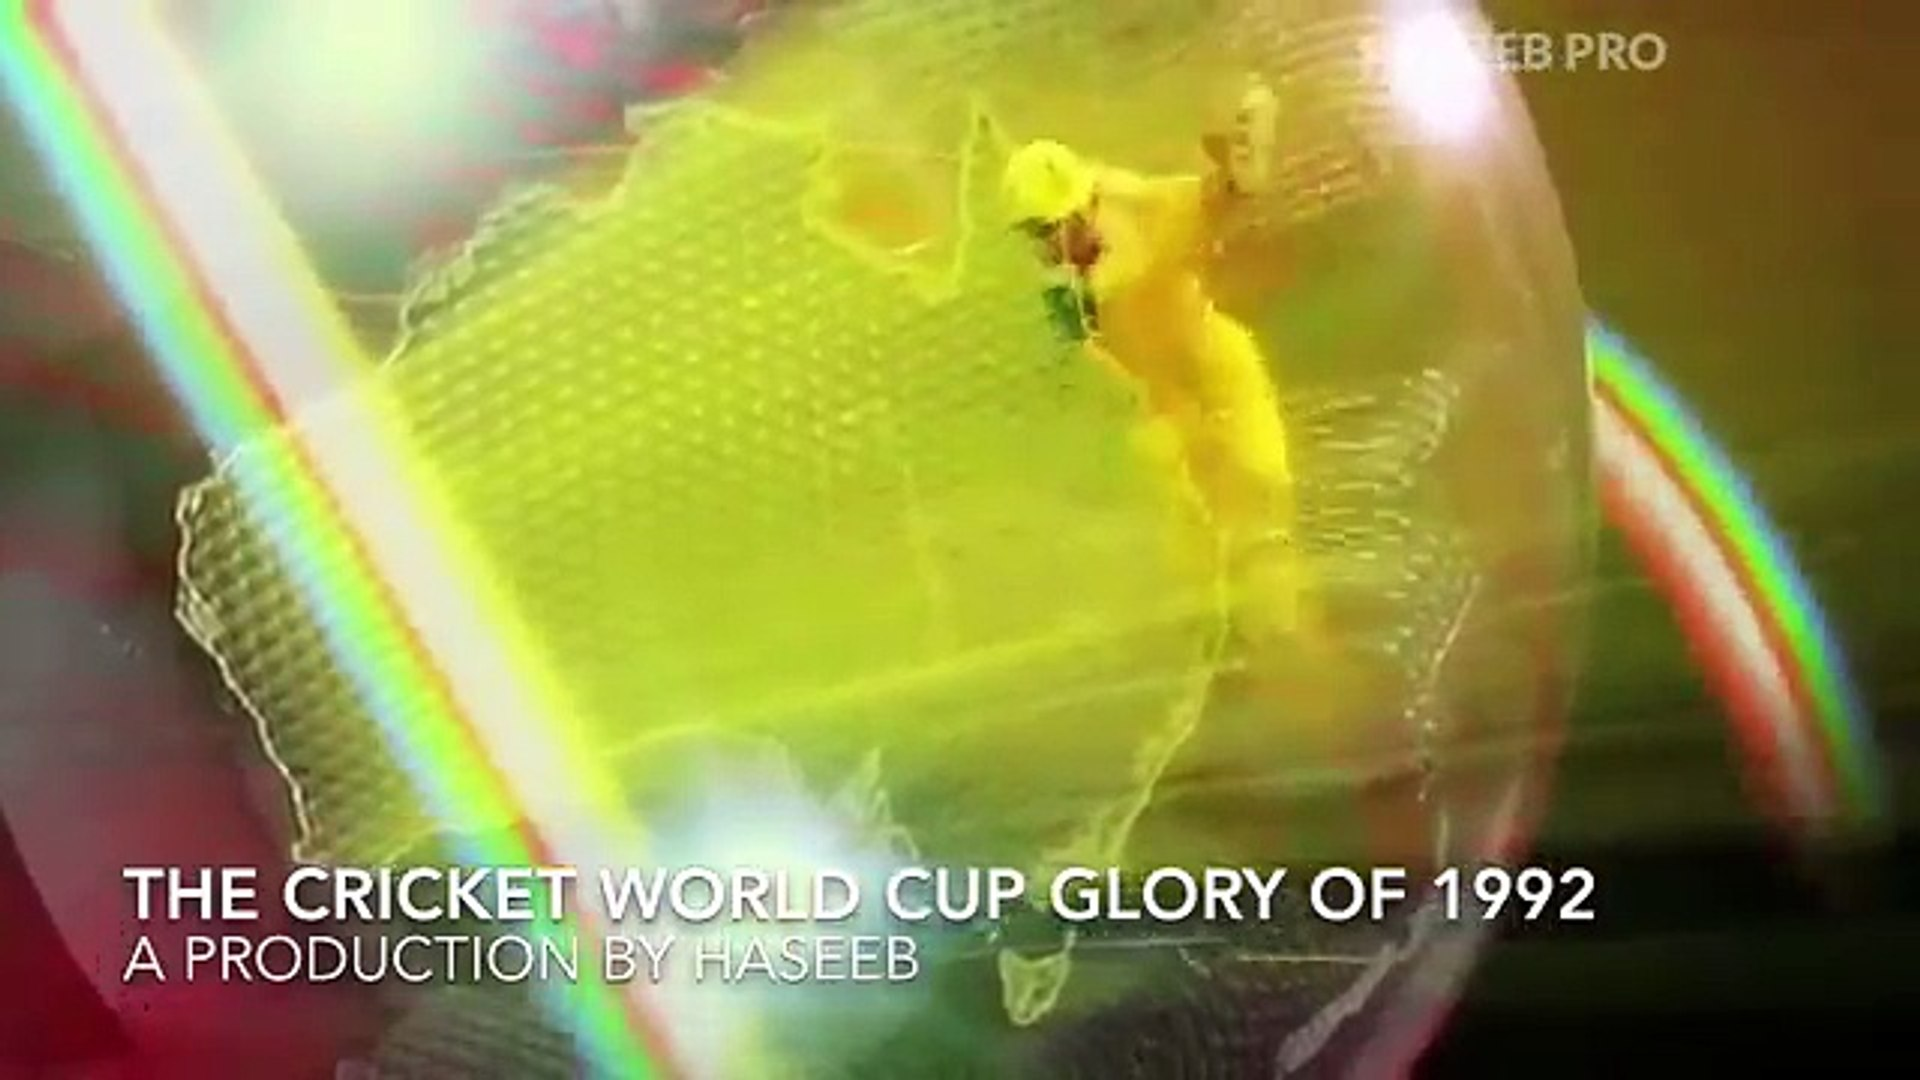 PAKISTAN WORLD CUP CRICKET 1992, THEME SONG OF CRICKET WORLD CUP 1992, IMRAN KHAN,